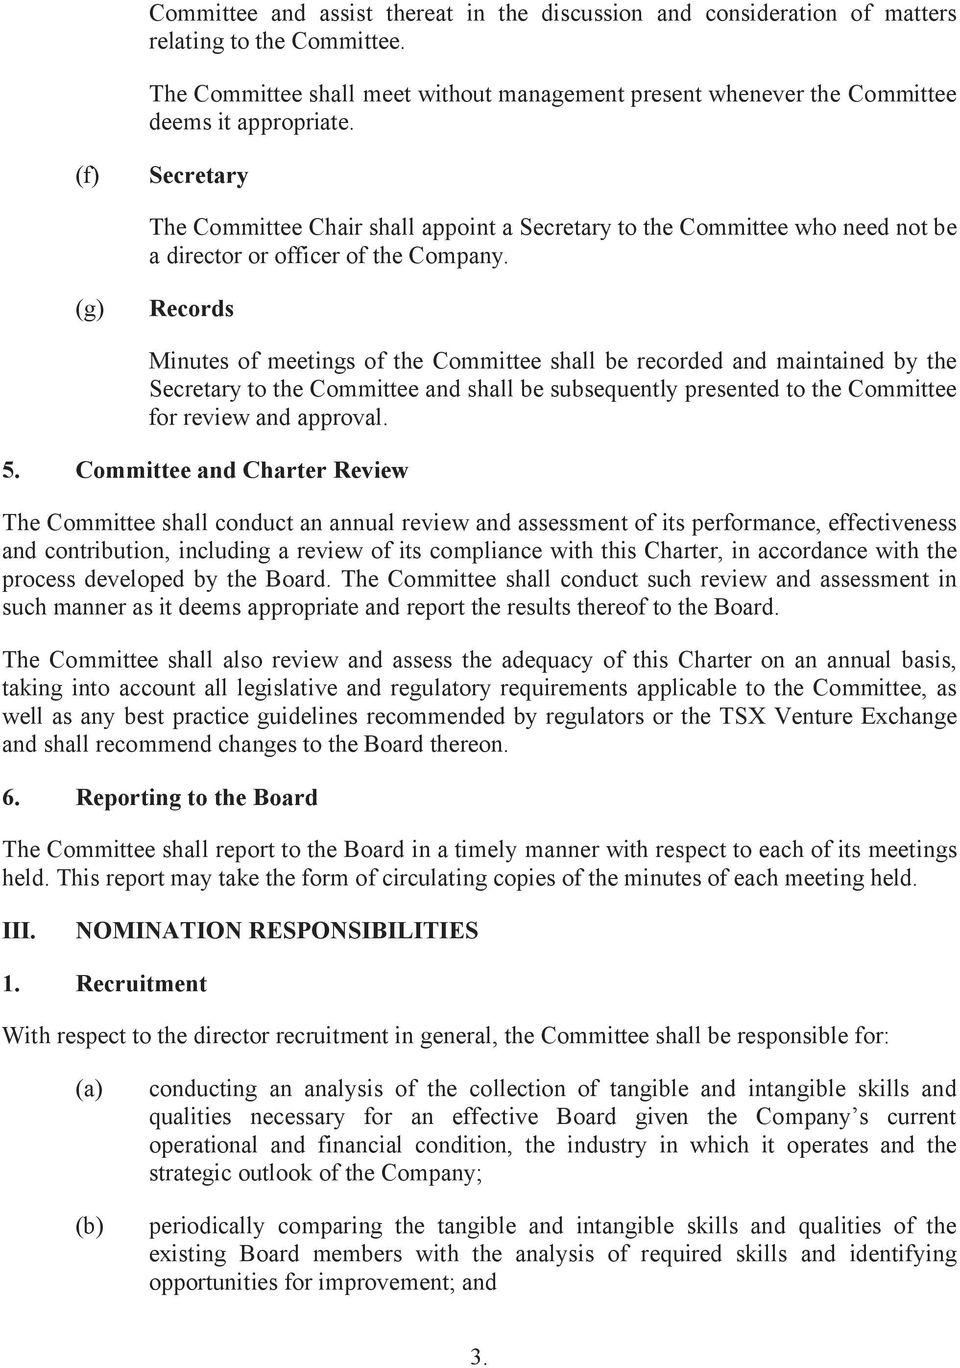 (g) Records Minutes of meetings of the Committee shall be recorded and maintained by the Secretary to the Committee and shall be subsequently presented to the Committee for review and approval. 5.